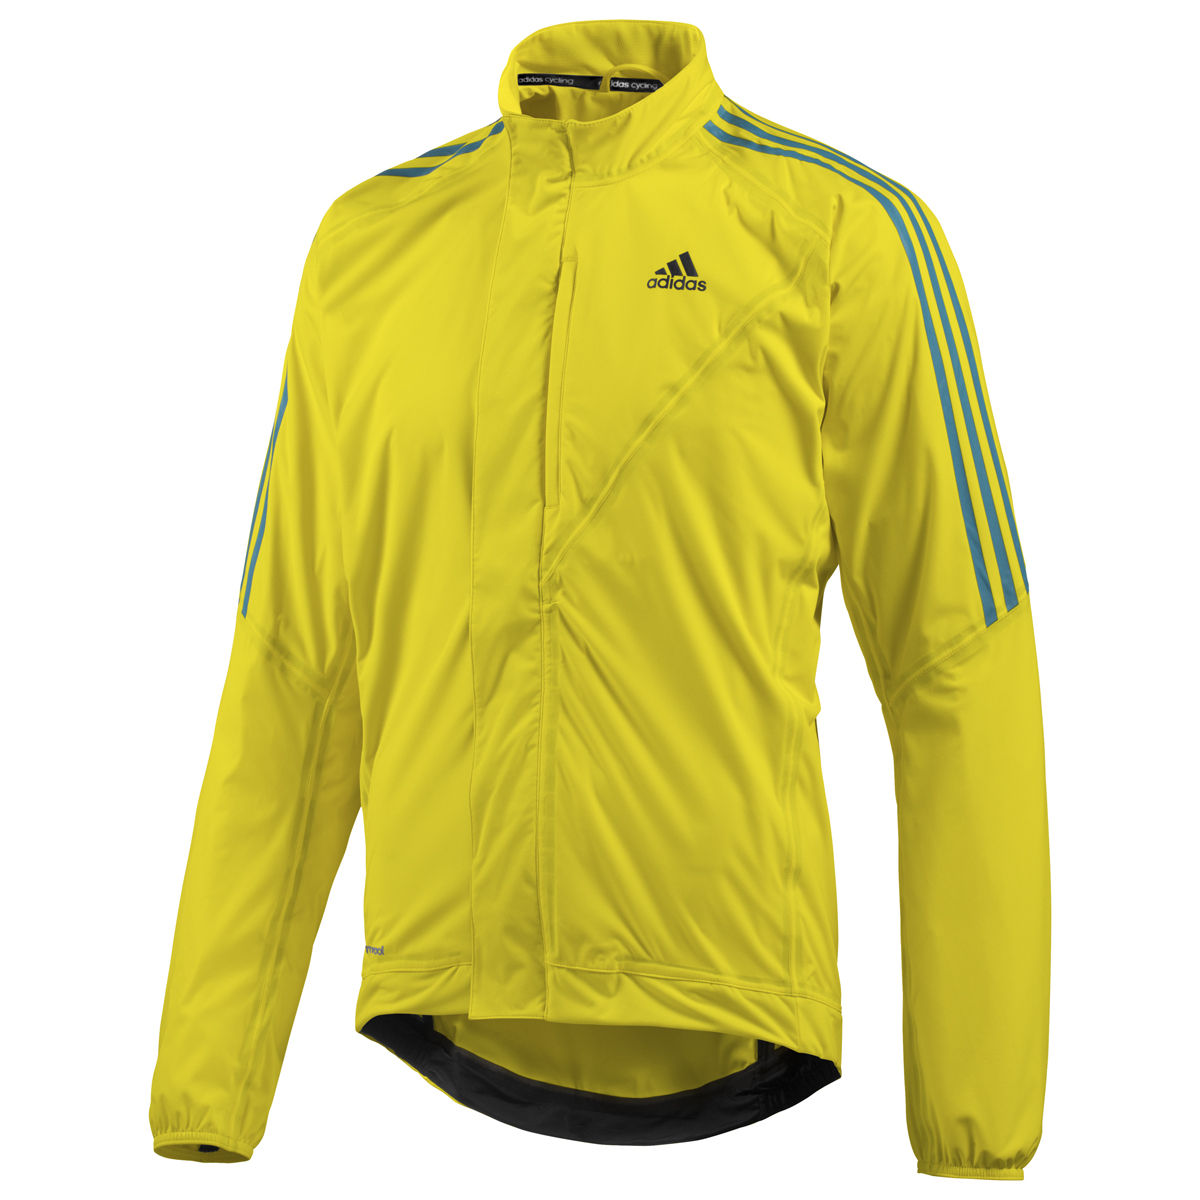 Adidas Tour Mens Cycling Rain Jacket